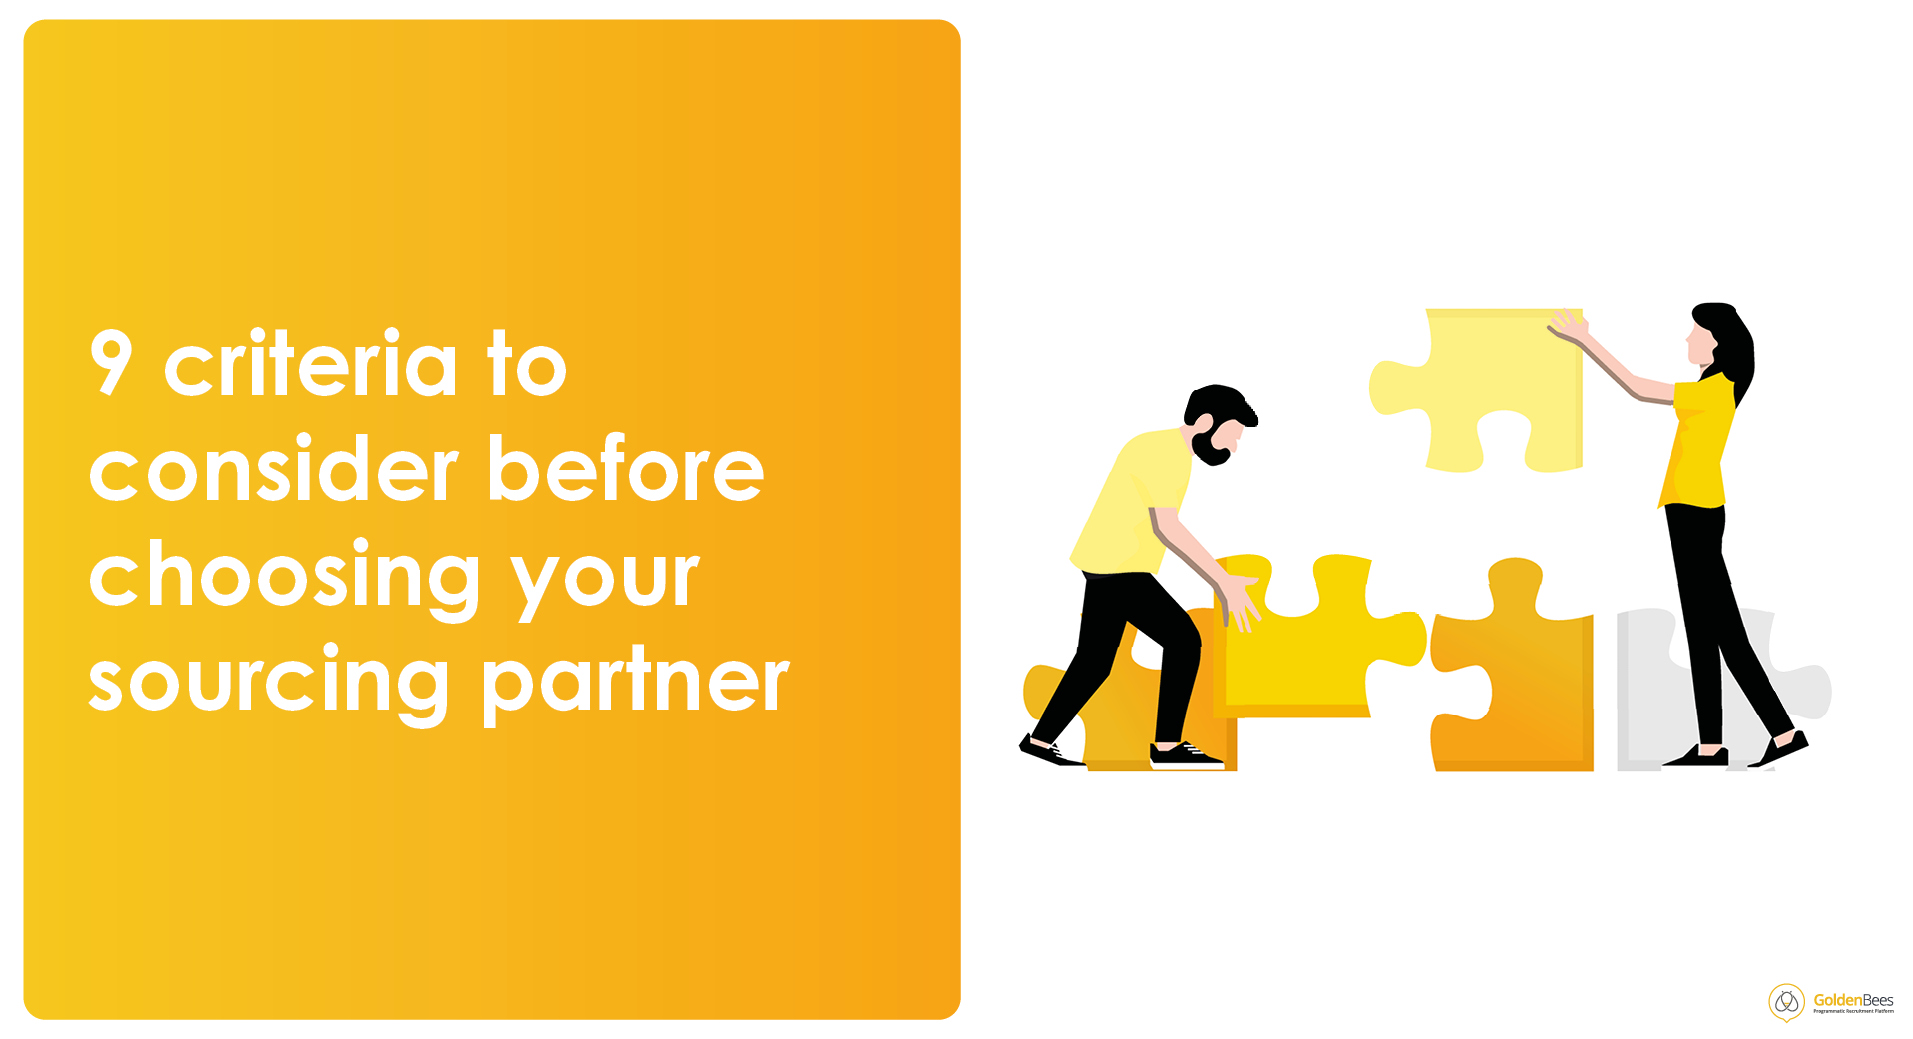 9 criteria to consider before choosing your sourcing partner